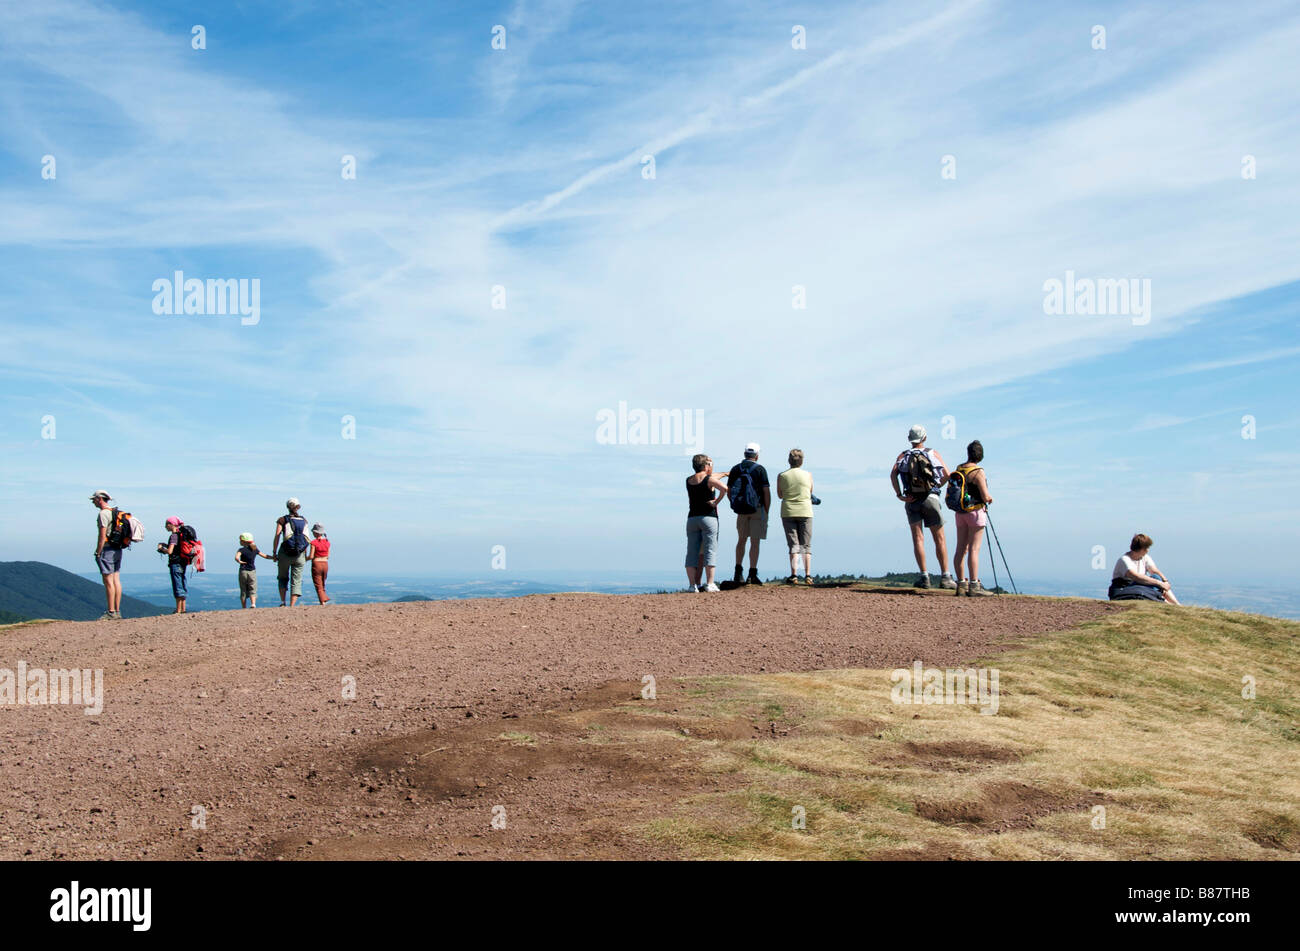 Walkers in front of the volcano Puy de Dome in Chaine des Puys, Massif Central, Auvergne, France - Stock Image